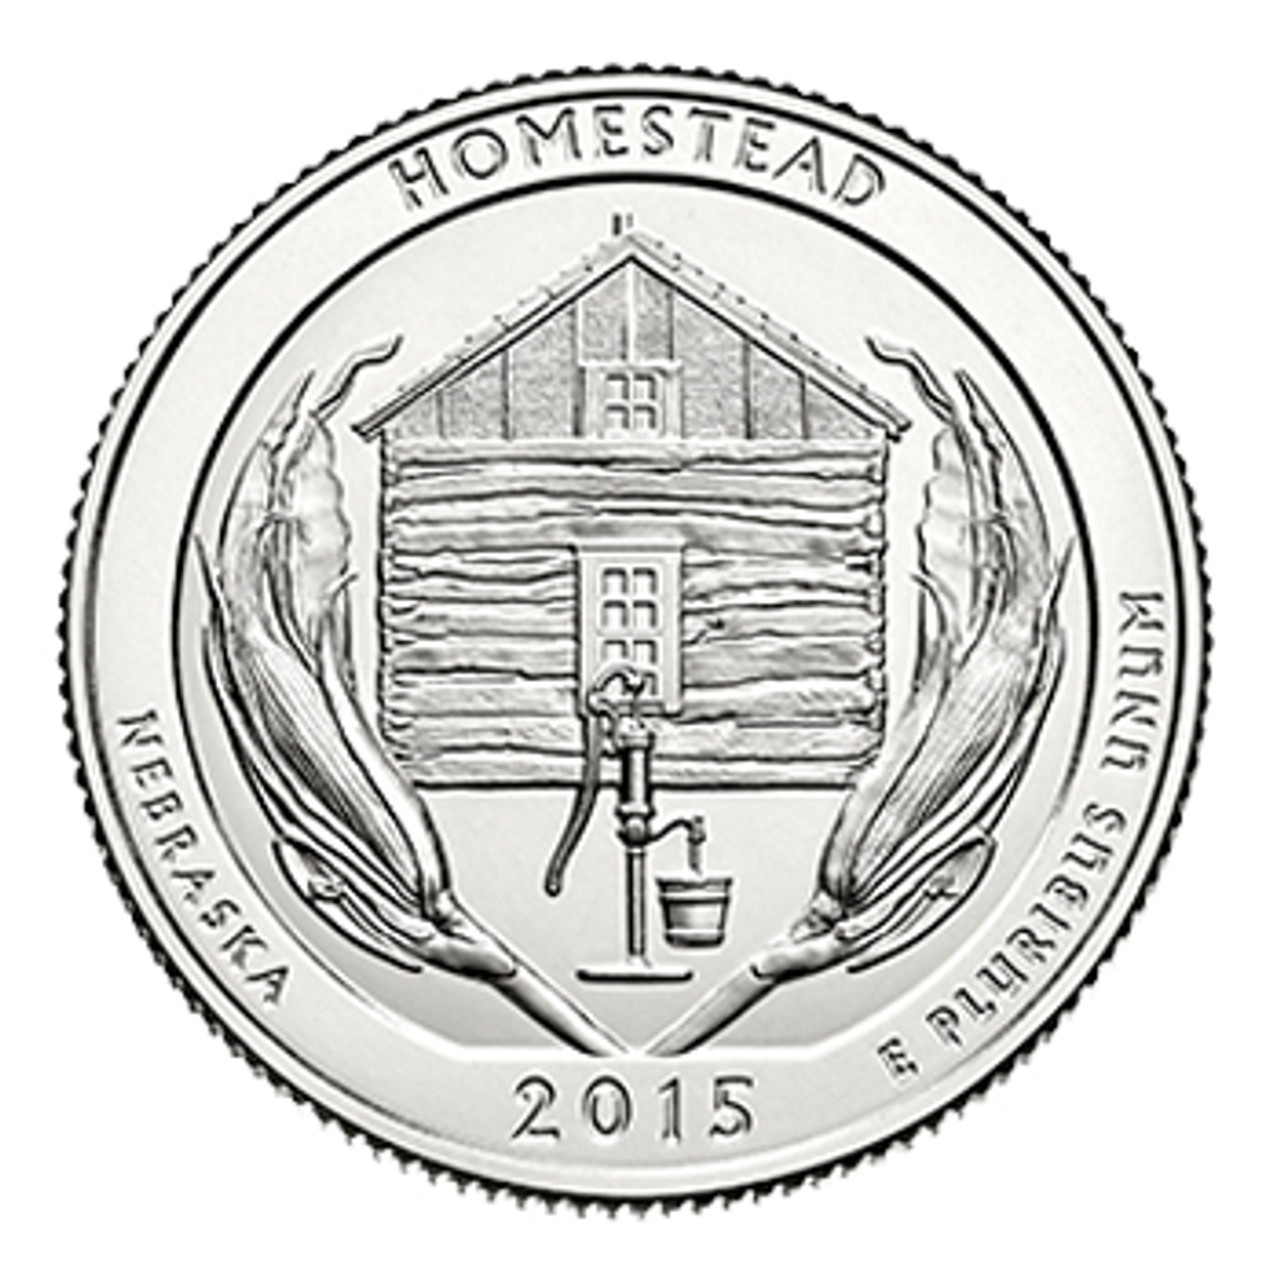 2015-D Homestead National Monument of America Quarter Brilliant Uncirculated Image 1